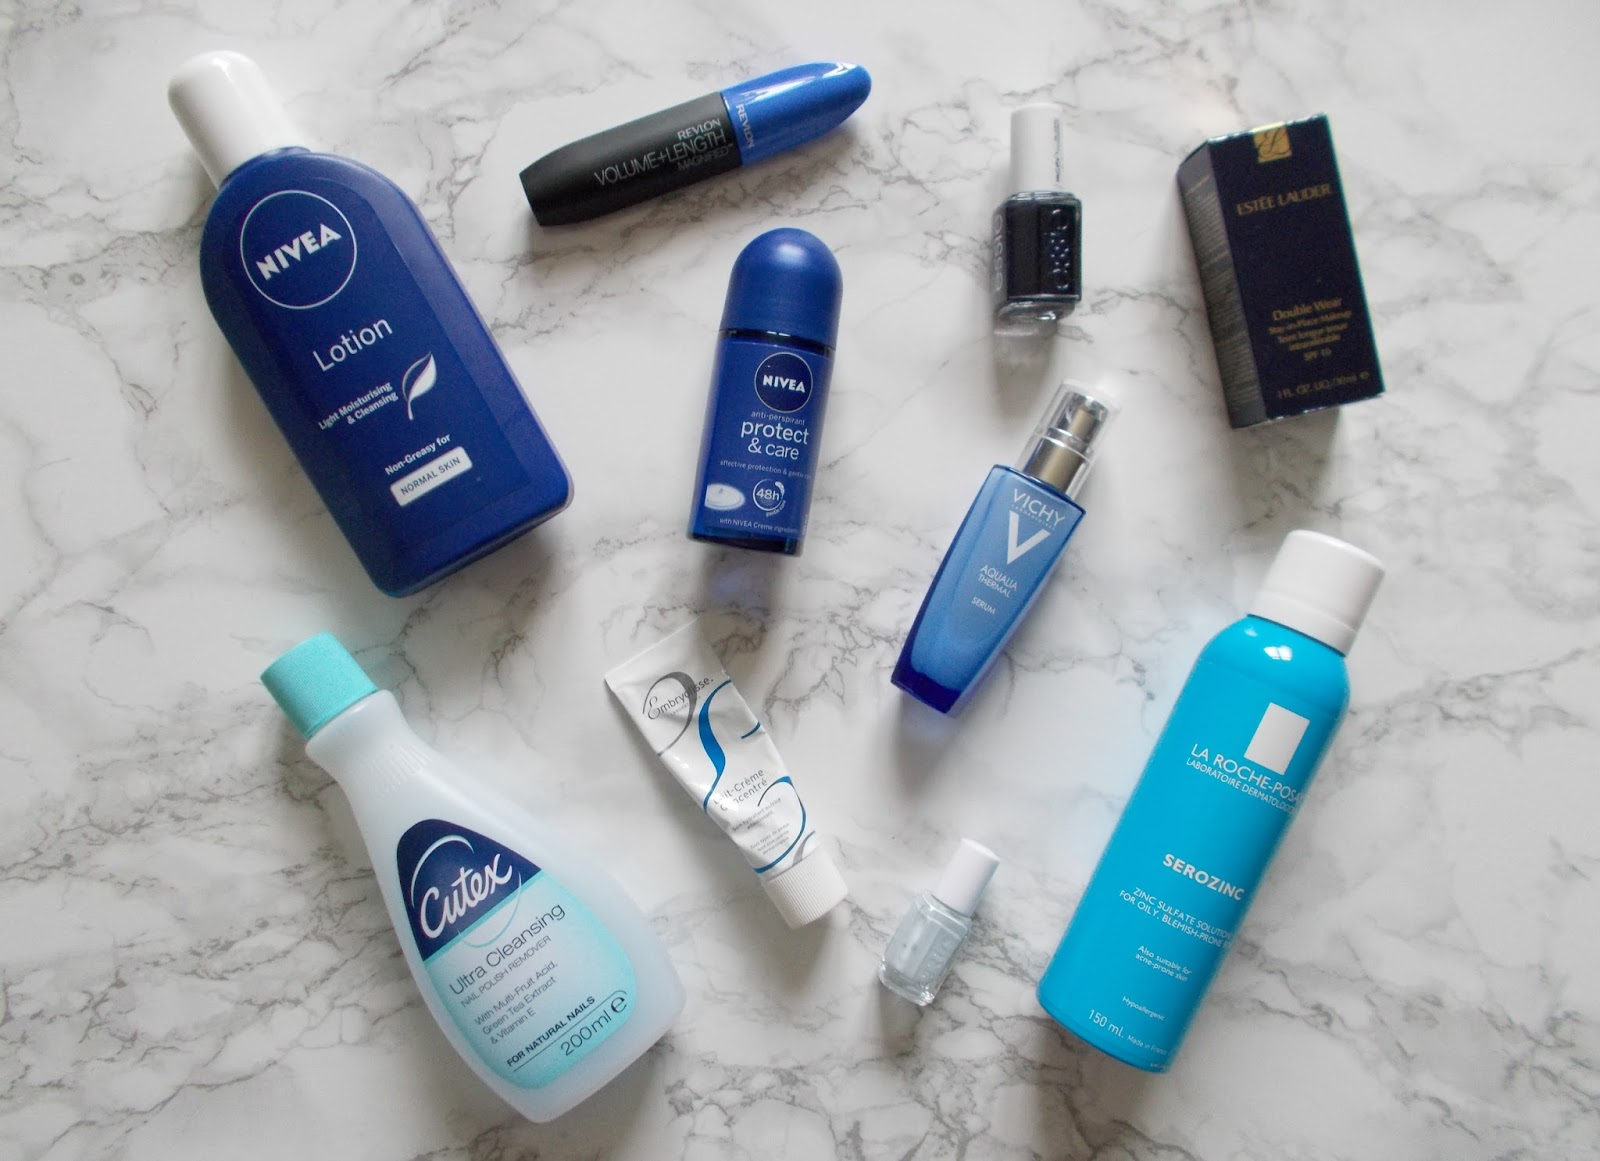 blue beauty products nivea cutex estee lauder vichy la roche posay embryolisse essie revlon